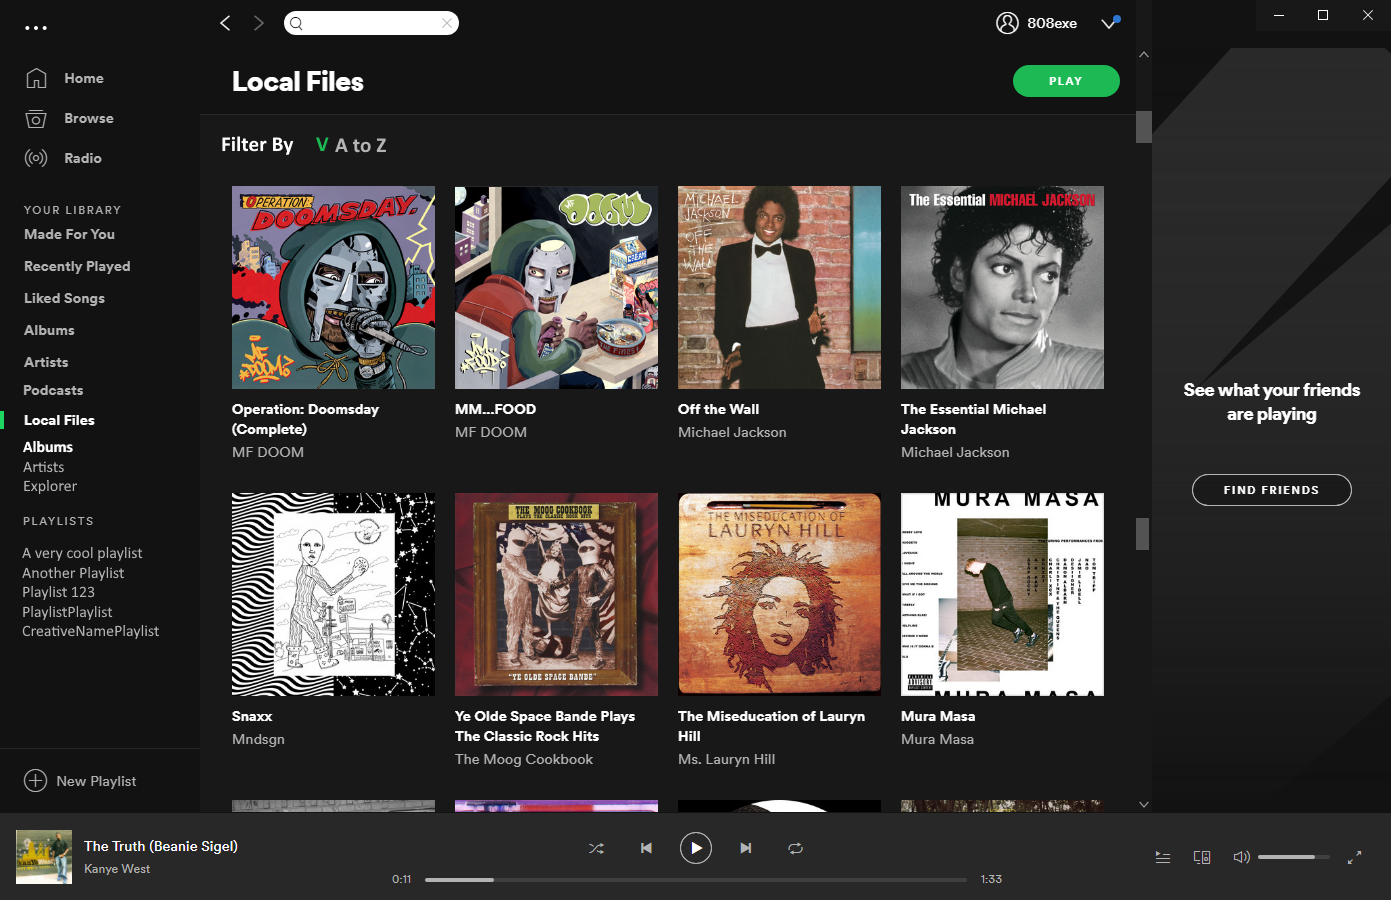 Allow us to view local files by the album - The Spotify ...